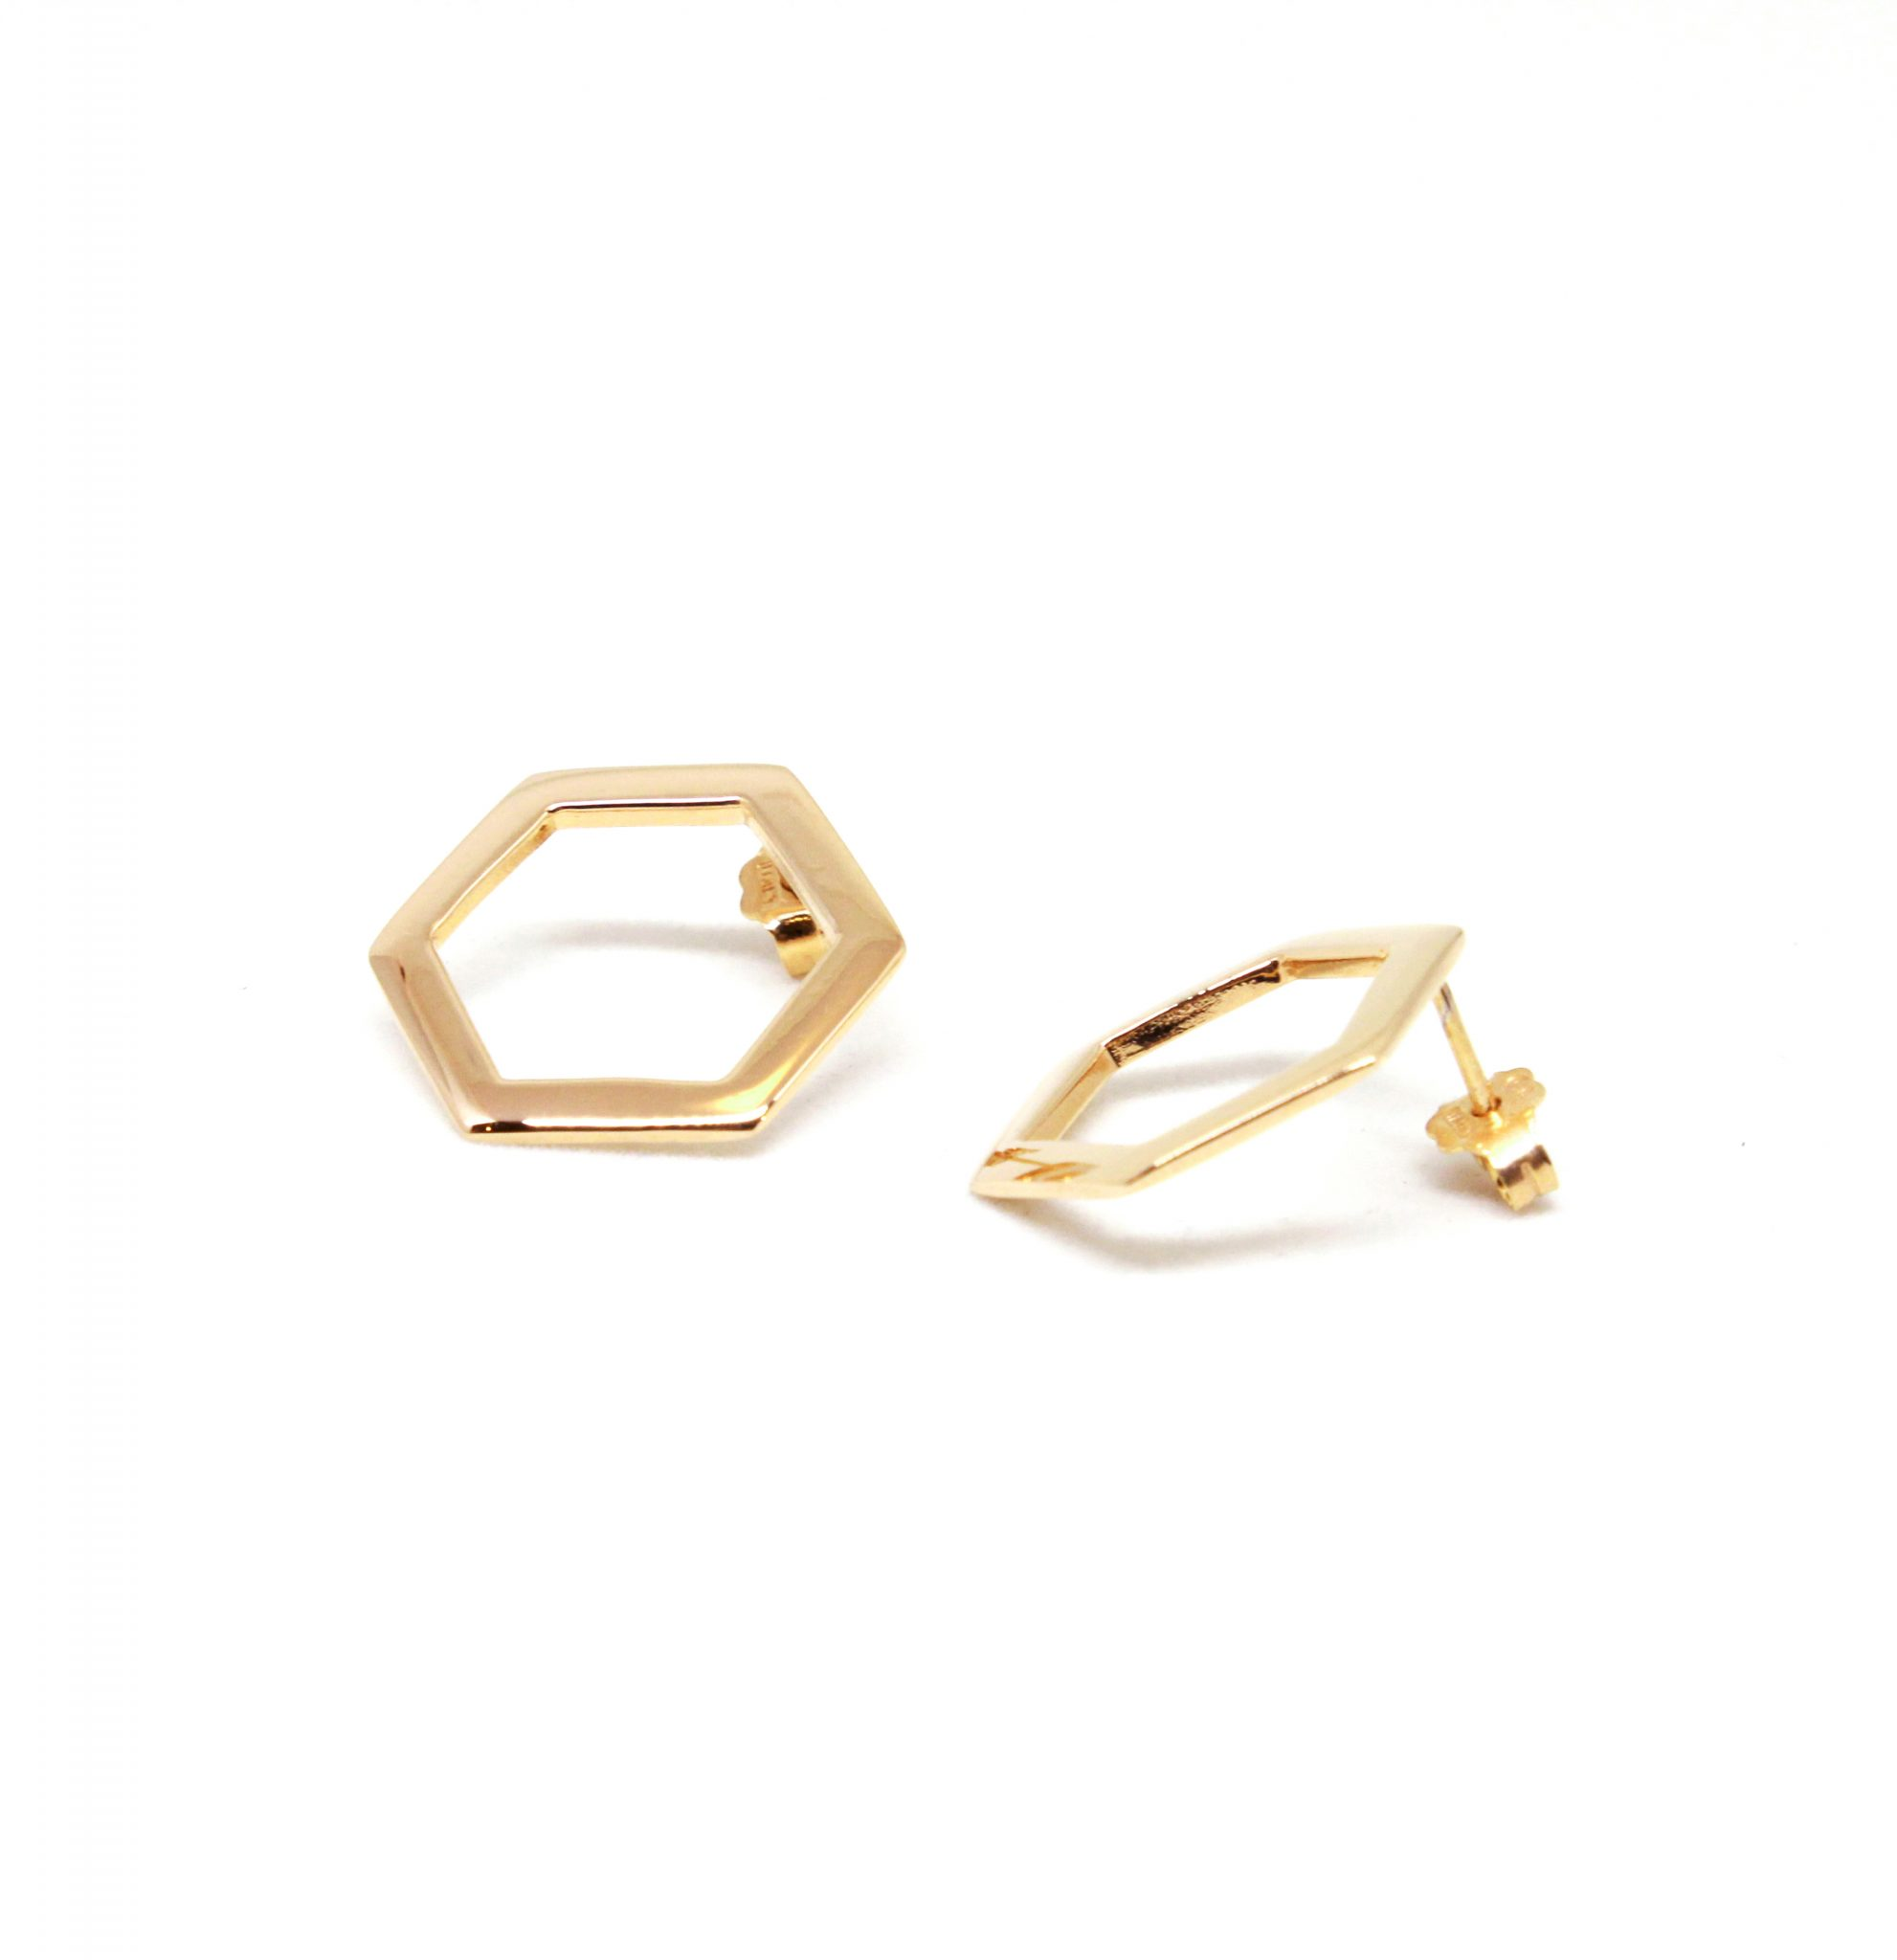 shop thread earrings earring creature gold hexagon dux trendy